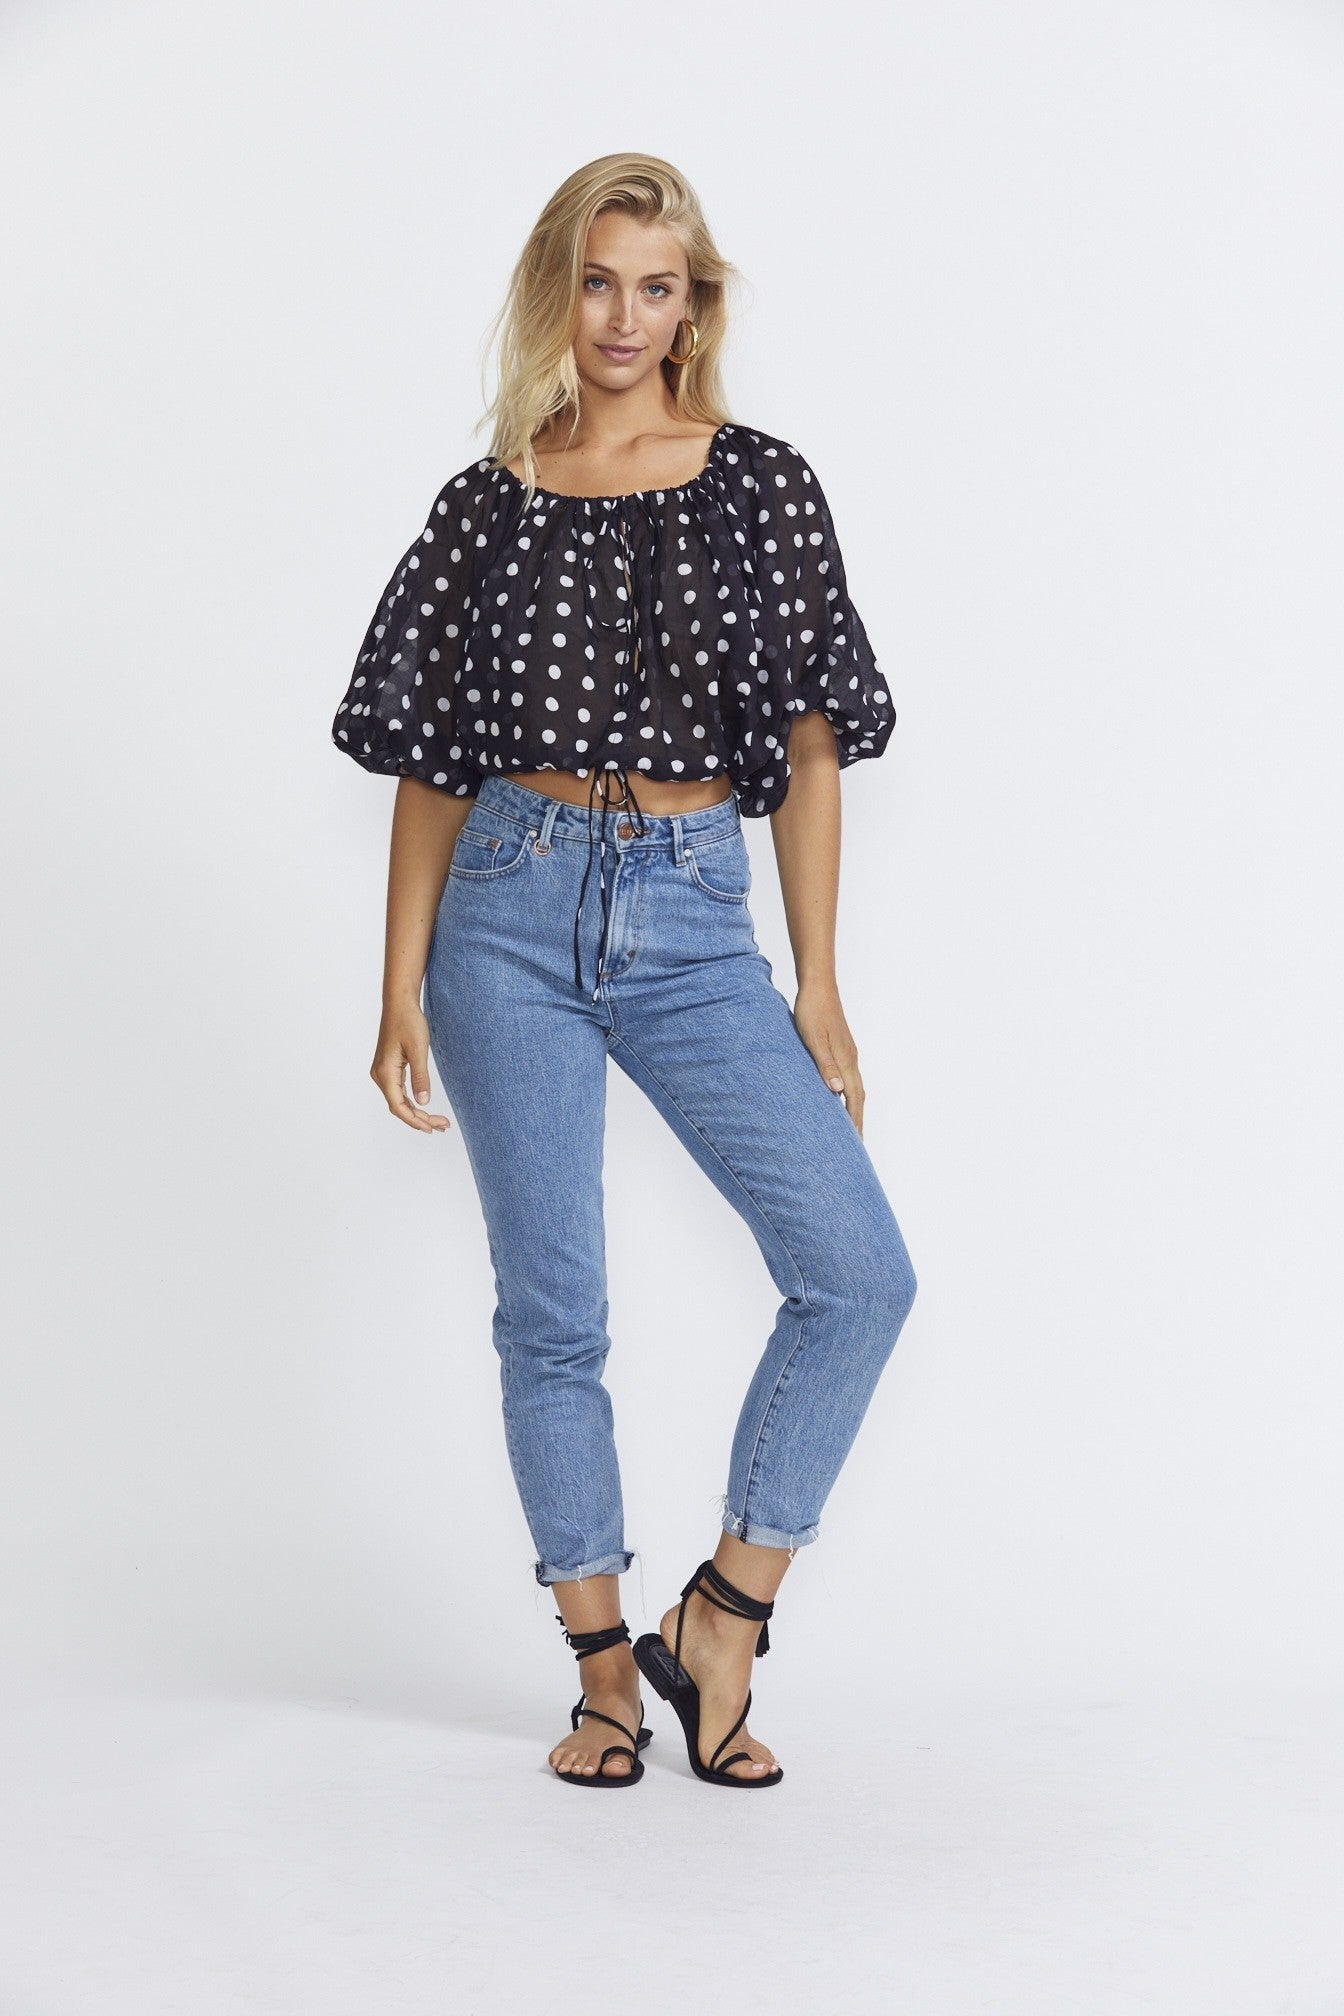 ÉSS THE LABEL LuLu Blouse - Polka Dot